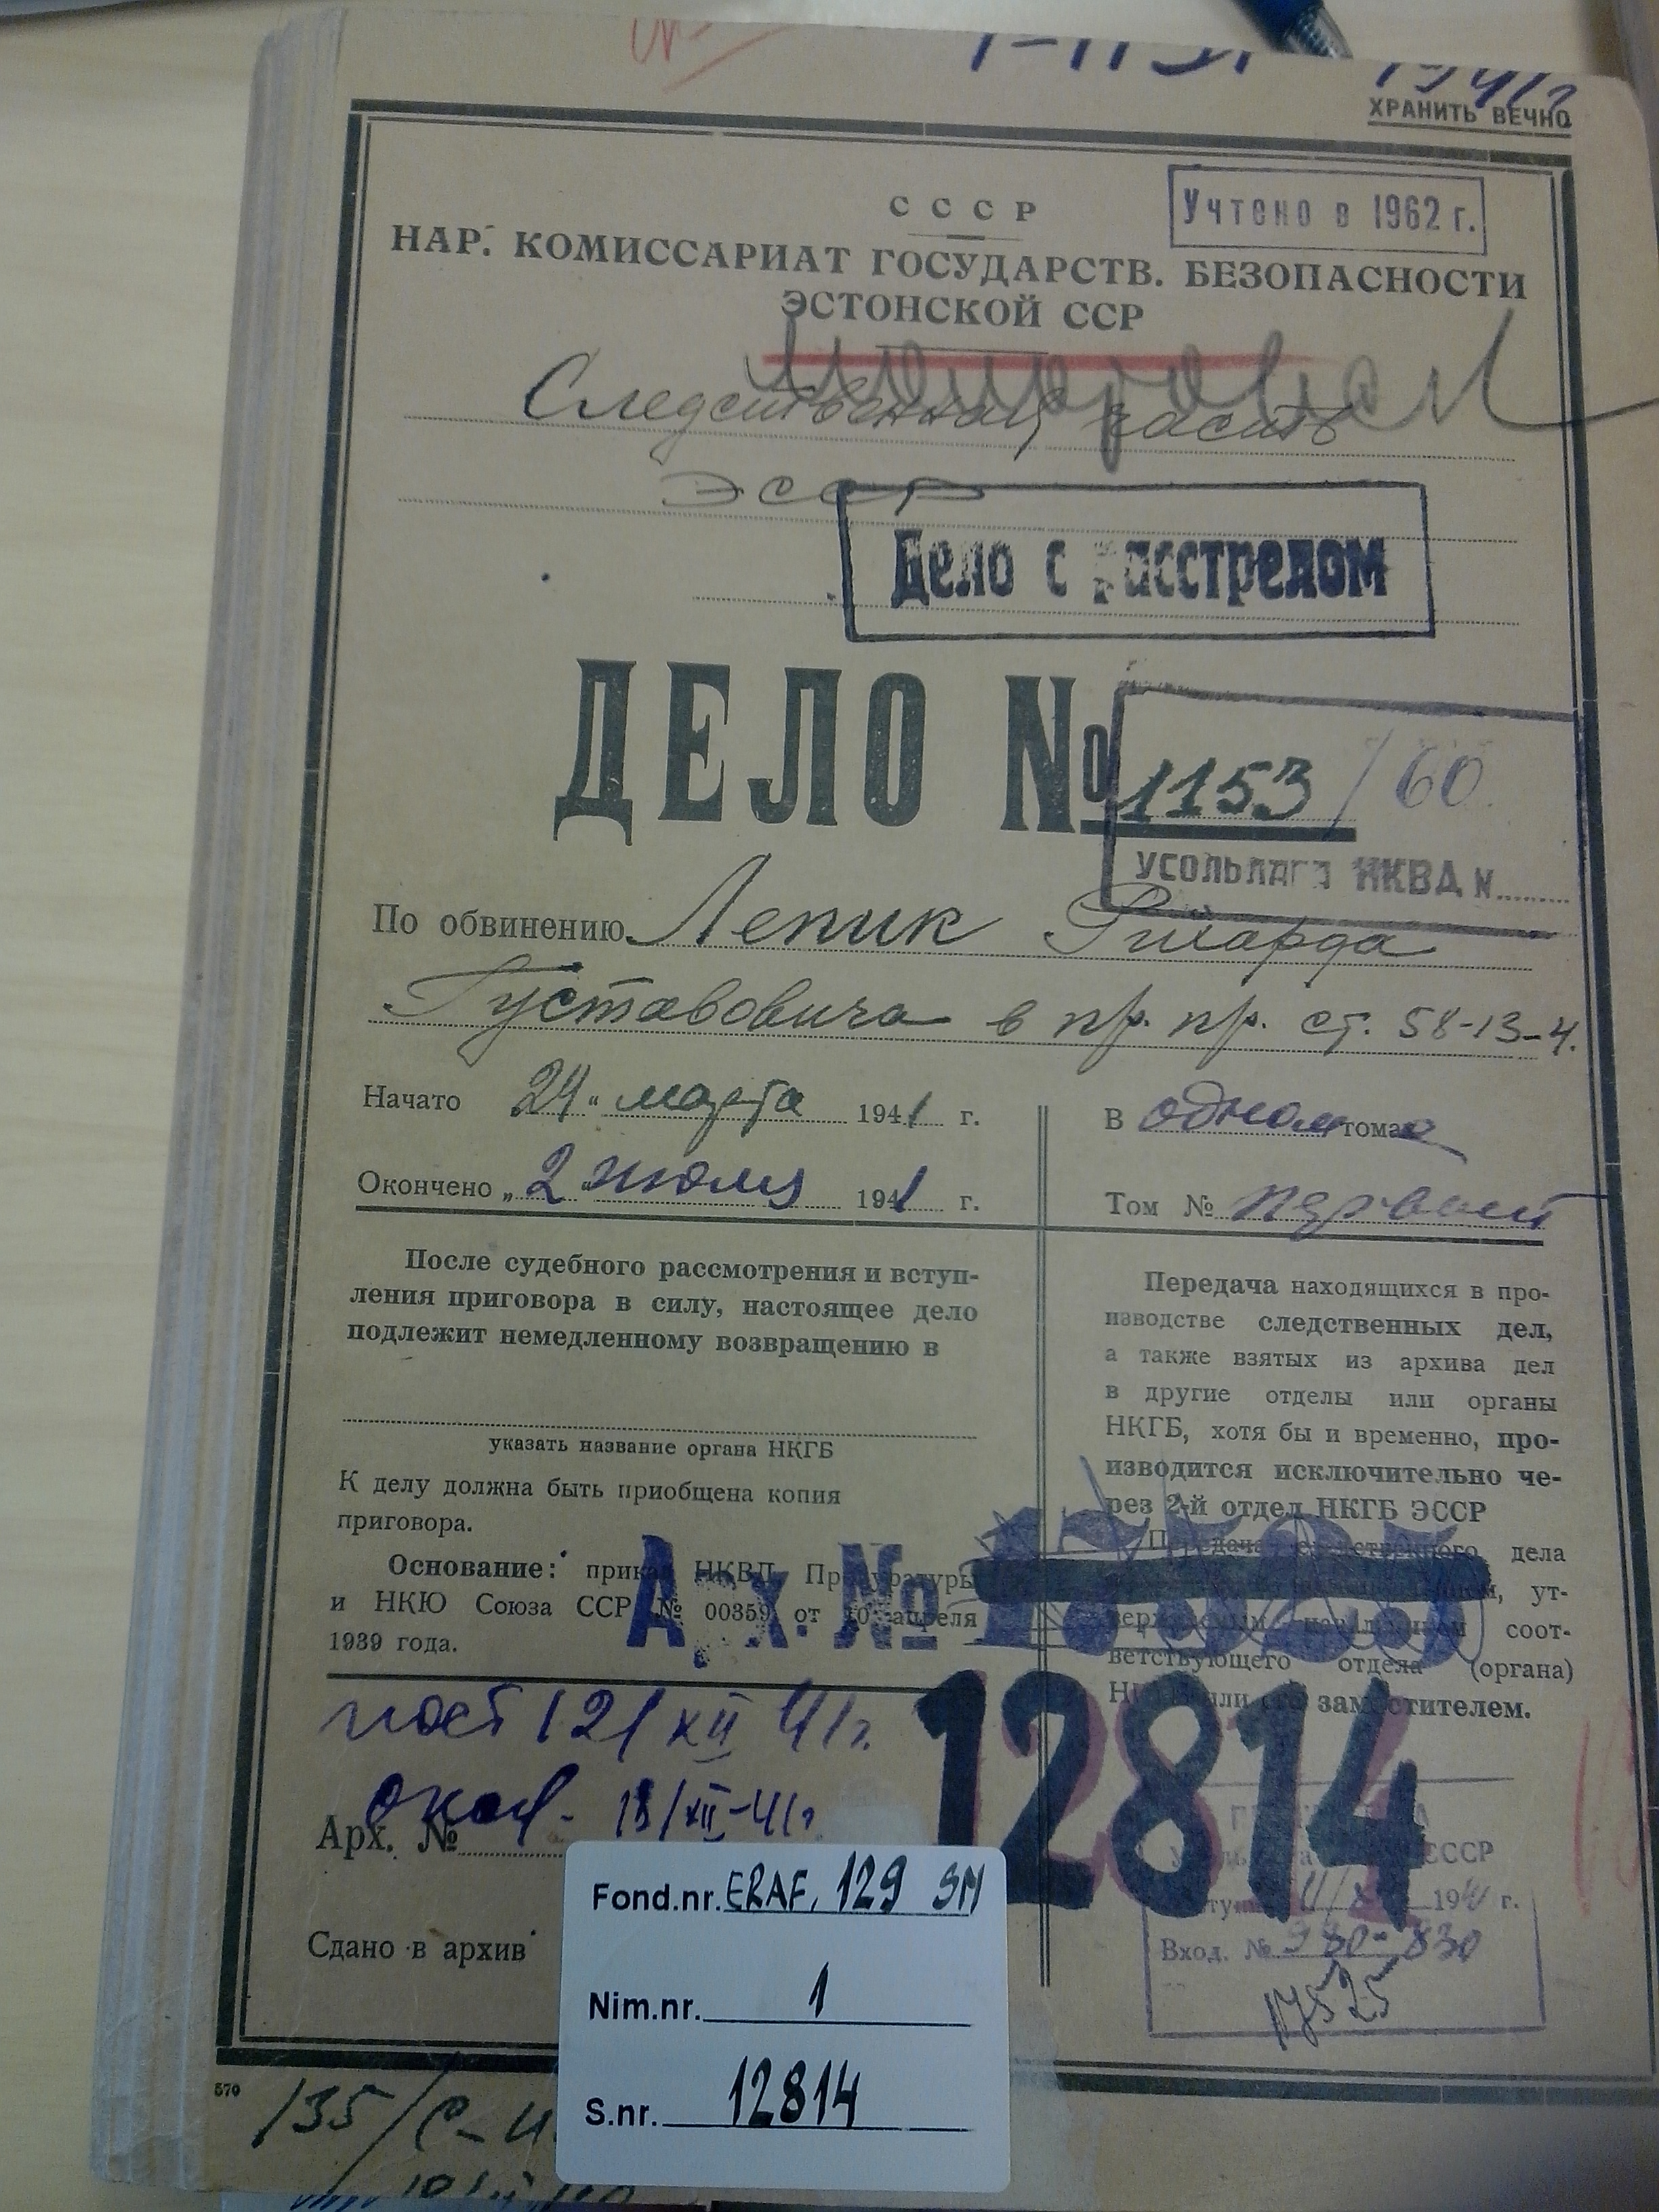 A typical front cover of a case file